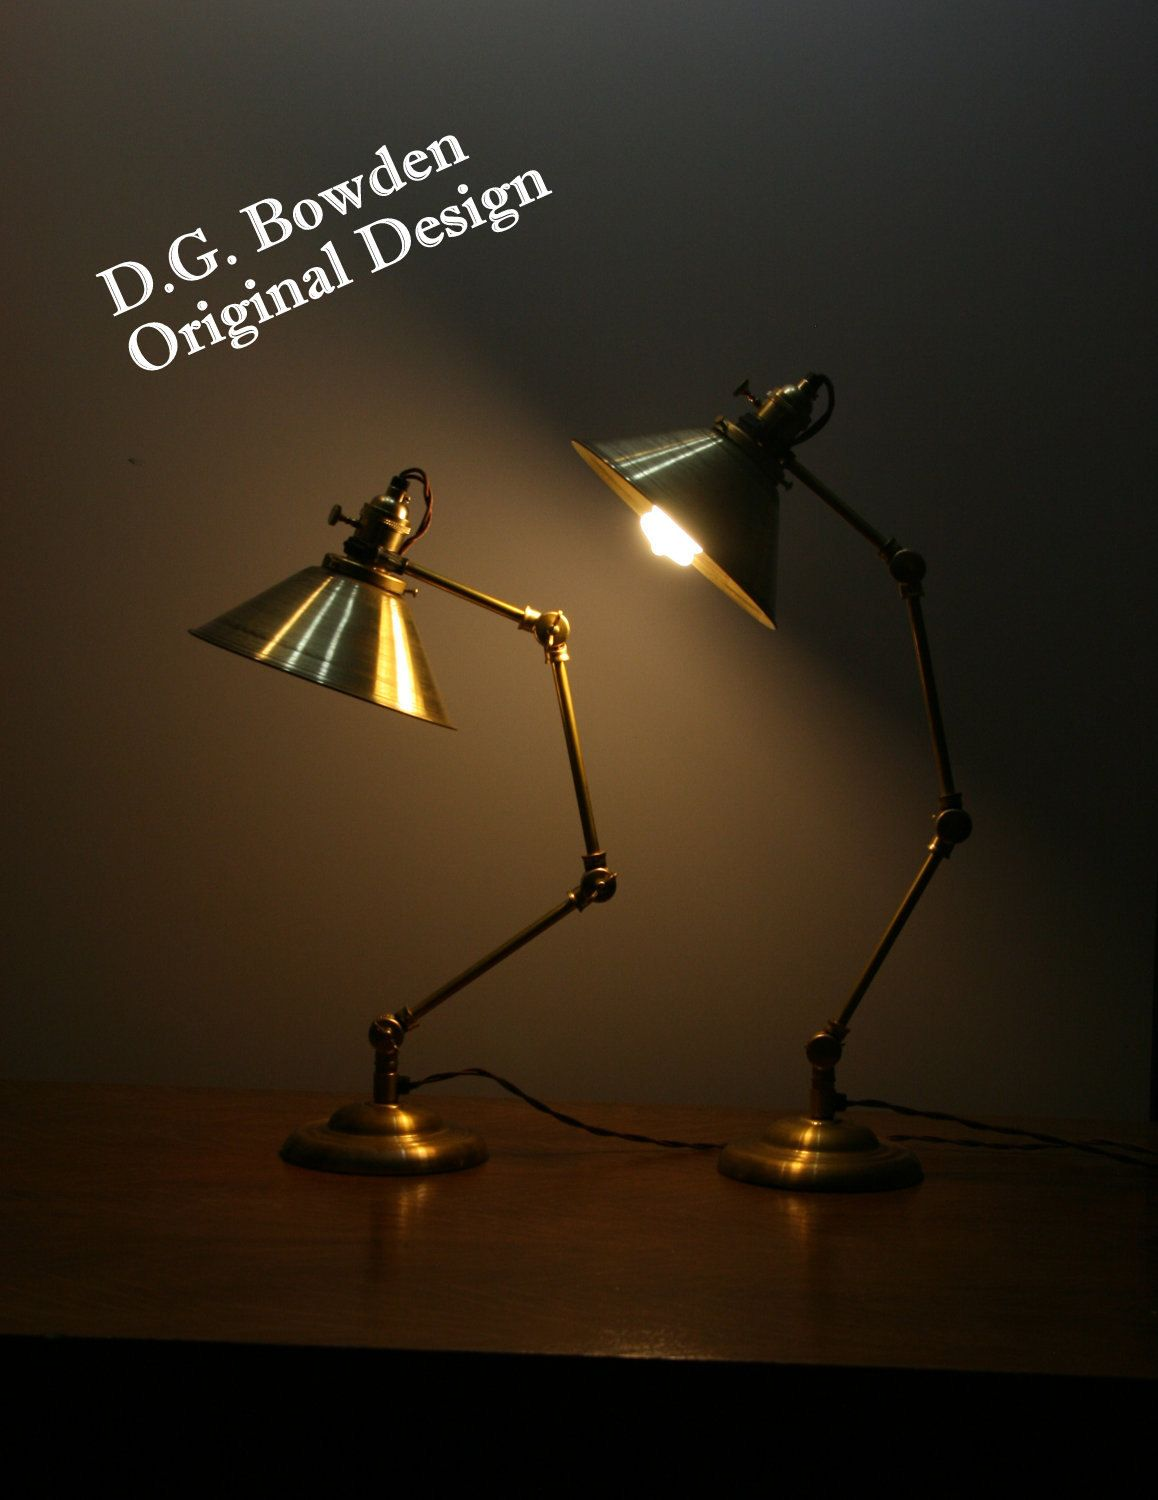 All Brass Industrial Articulating Desk Lamp with Vintage Style Brass Cone Shade - Articulating Table Light. £131.08, via Etsy.